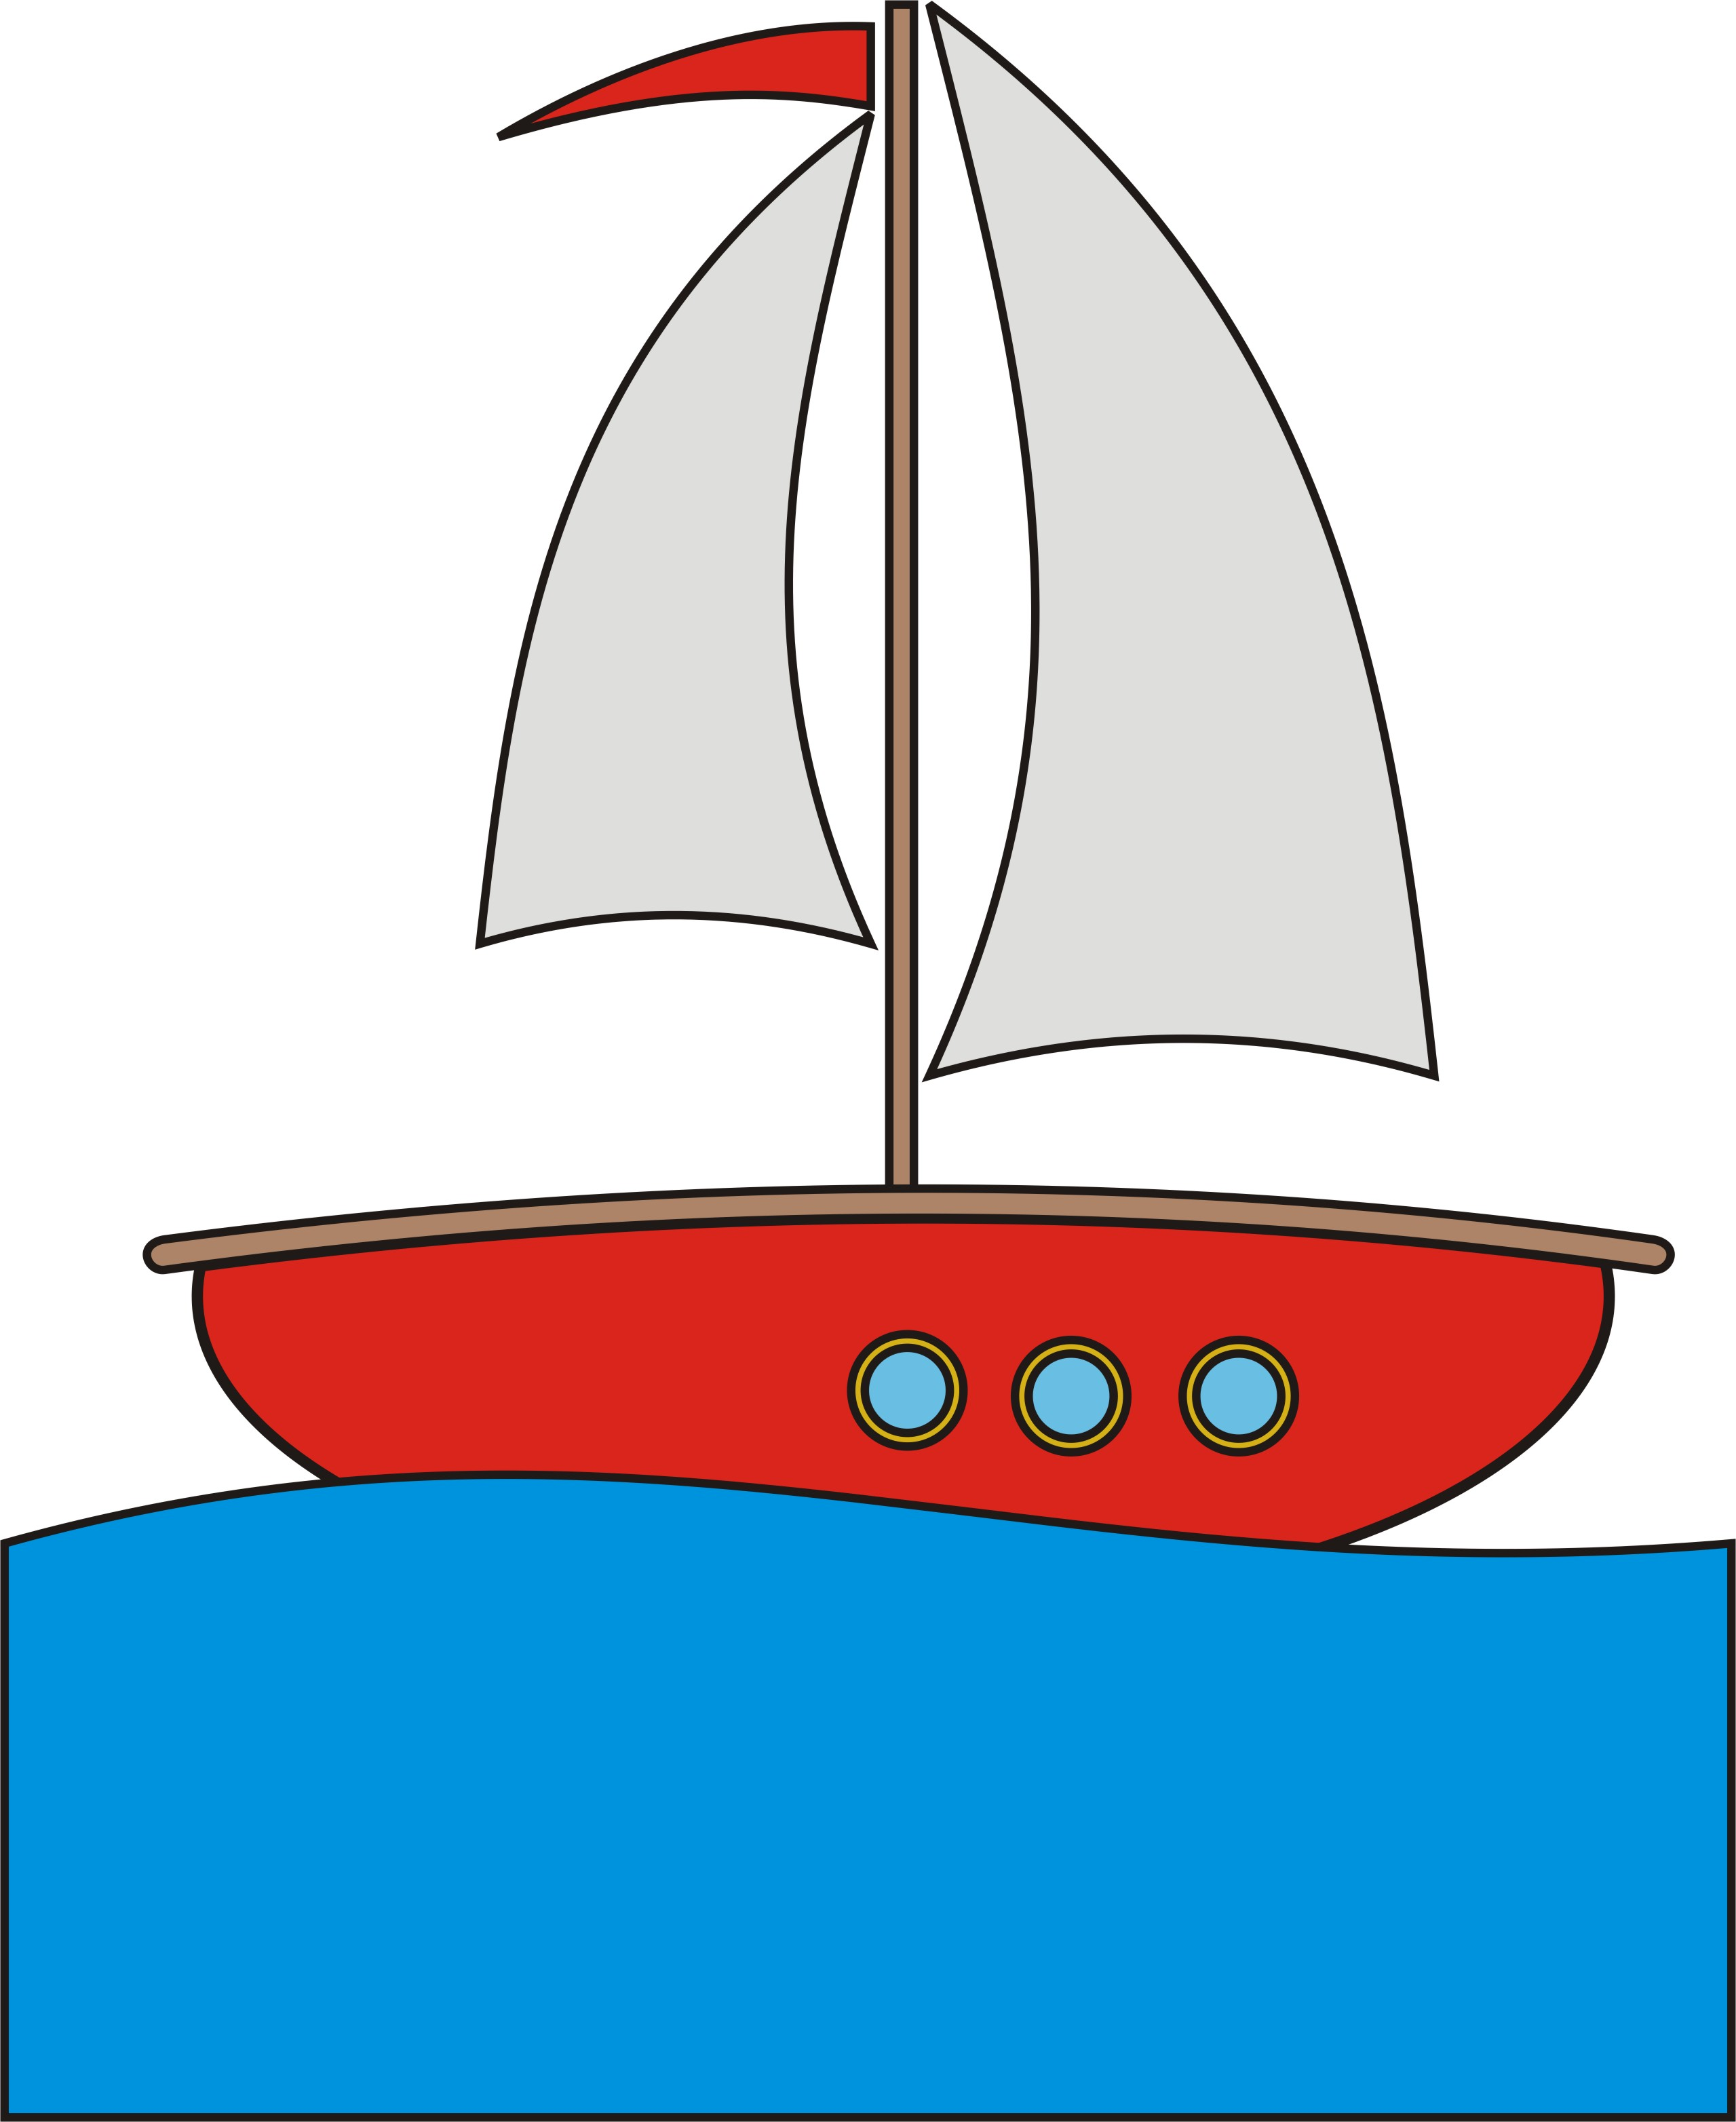 Tugboat clipart red boat Tug Clipart boat Boat of